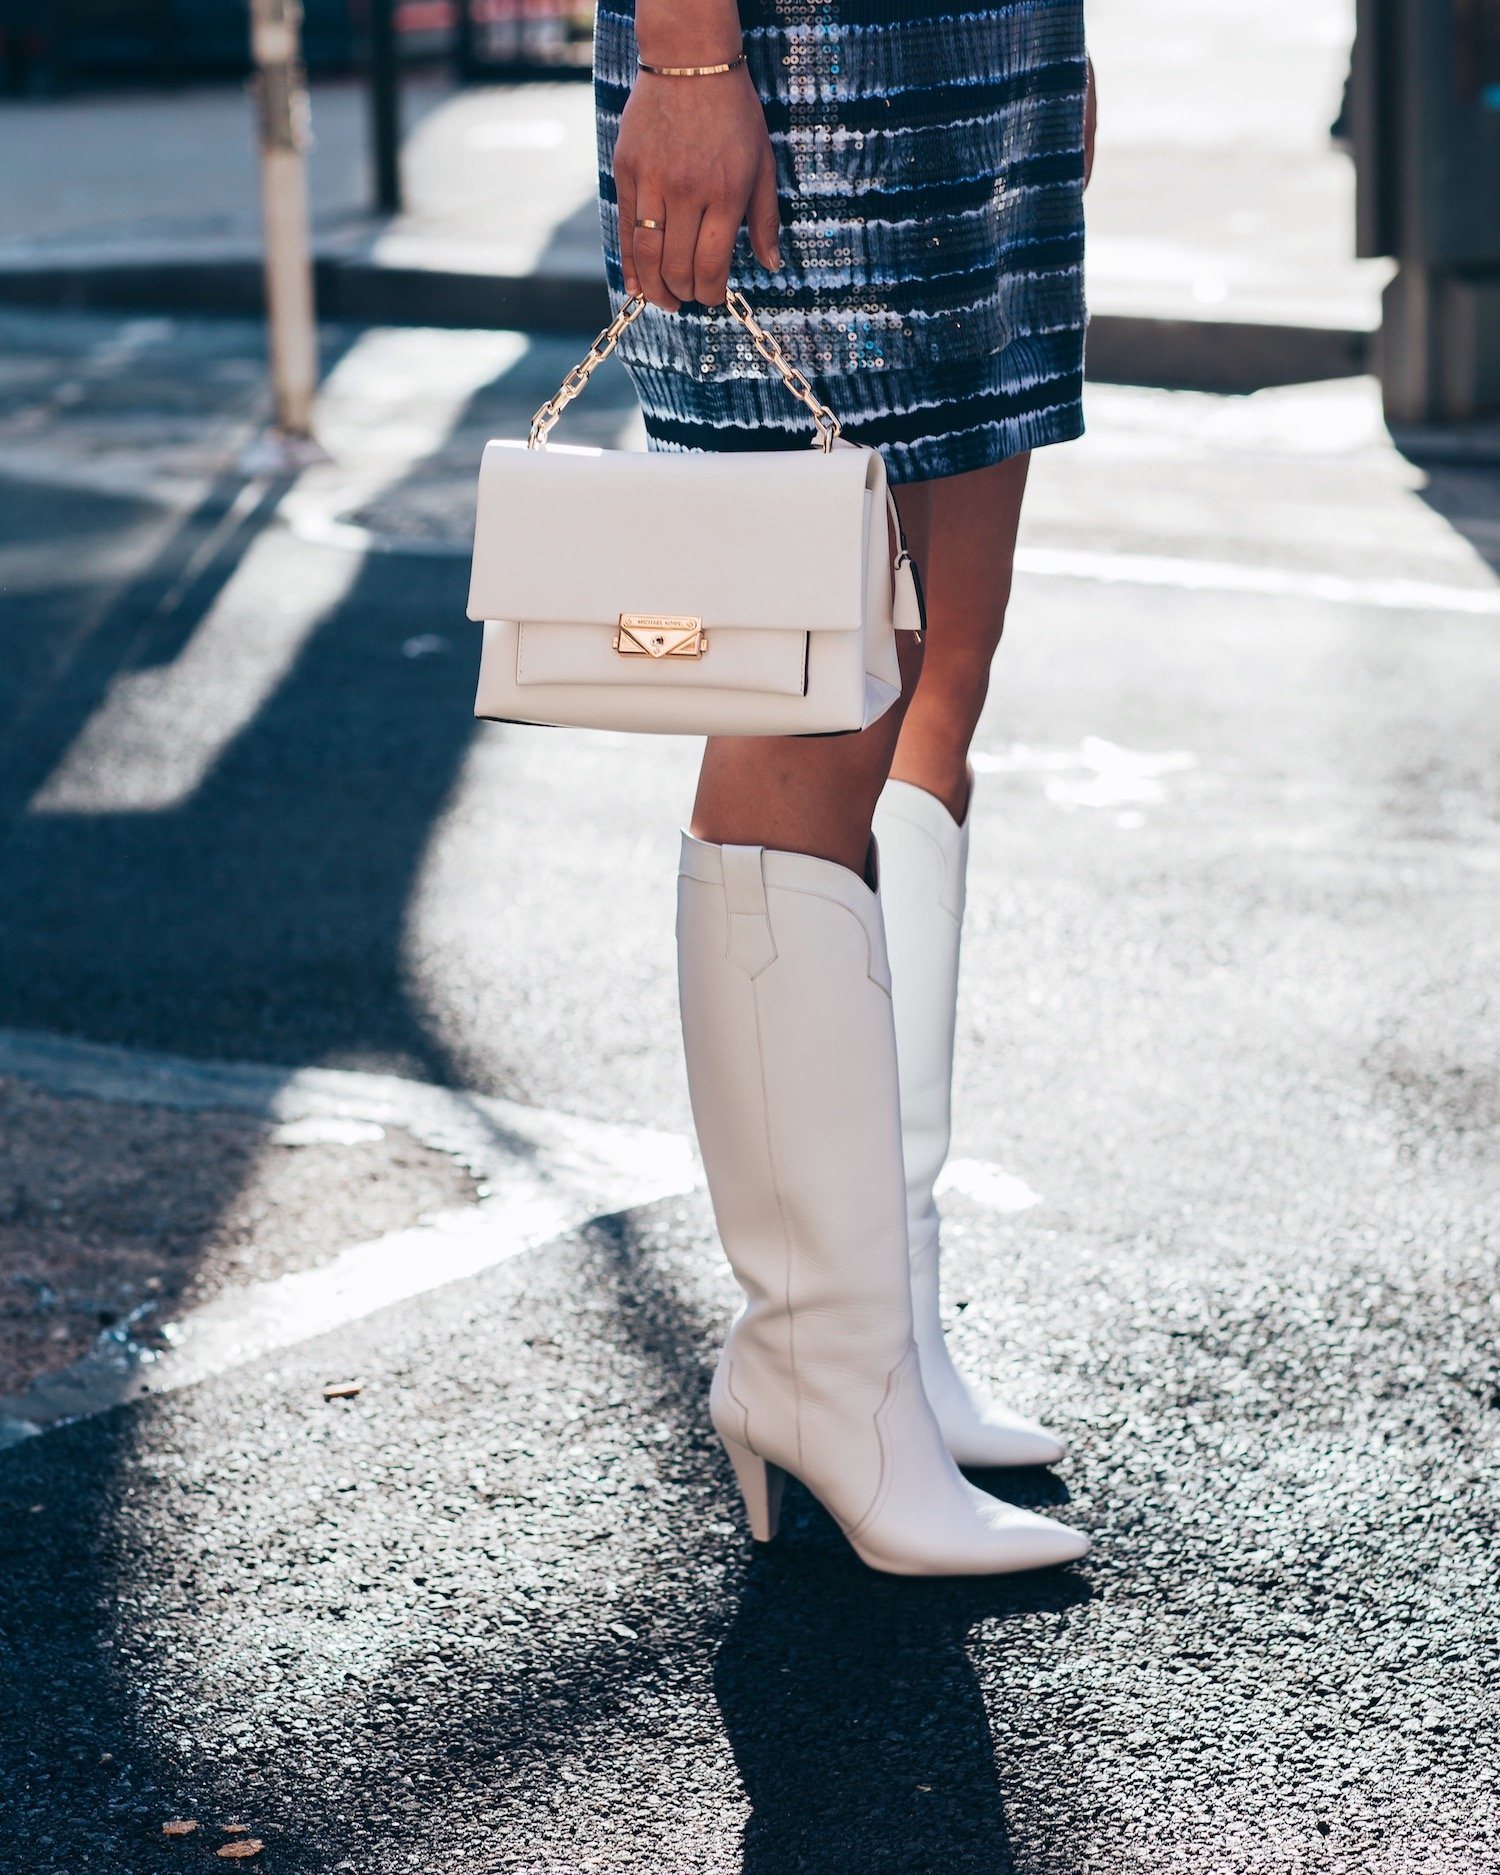 MICHAEL KORS NYC WHITE BOOTS